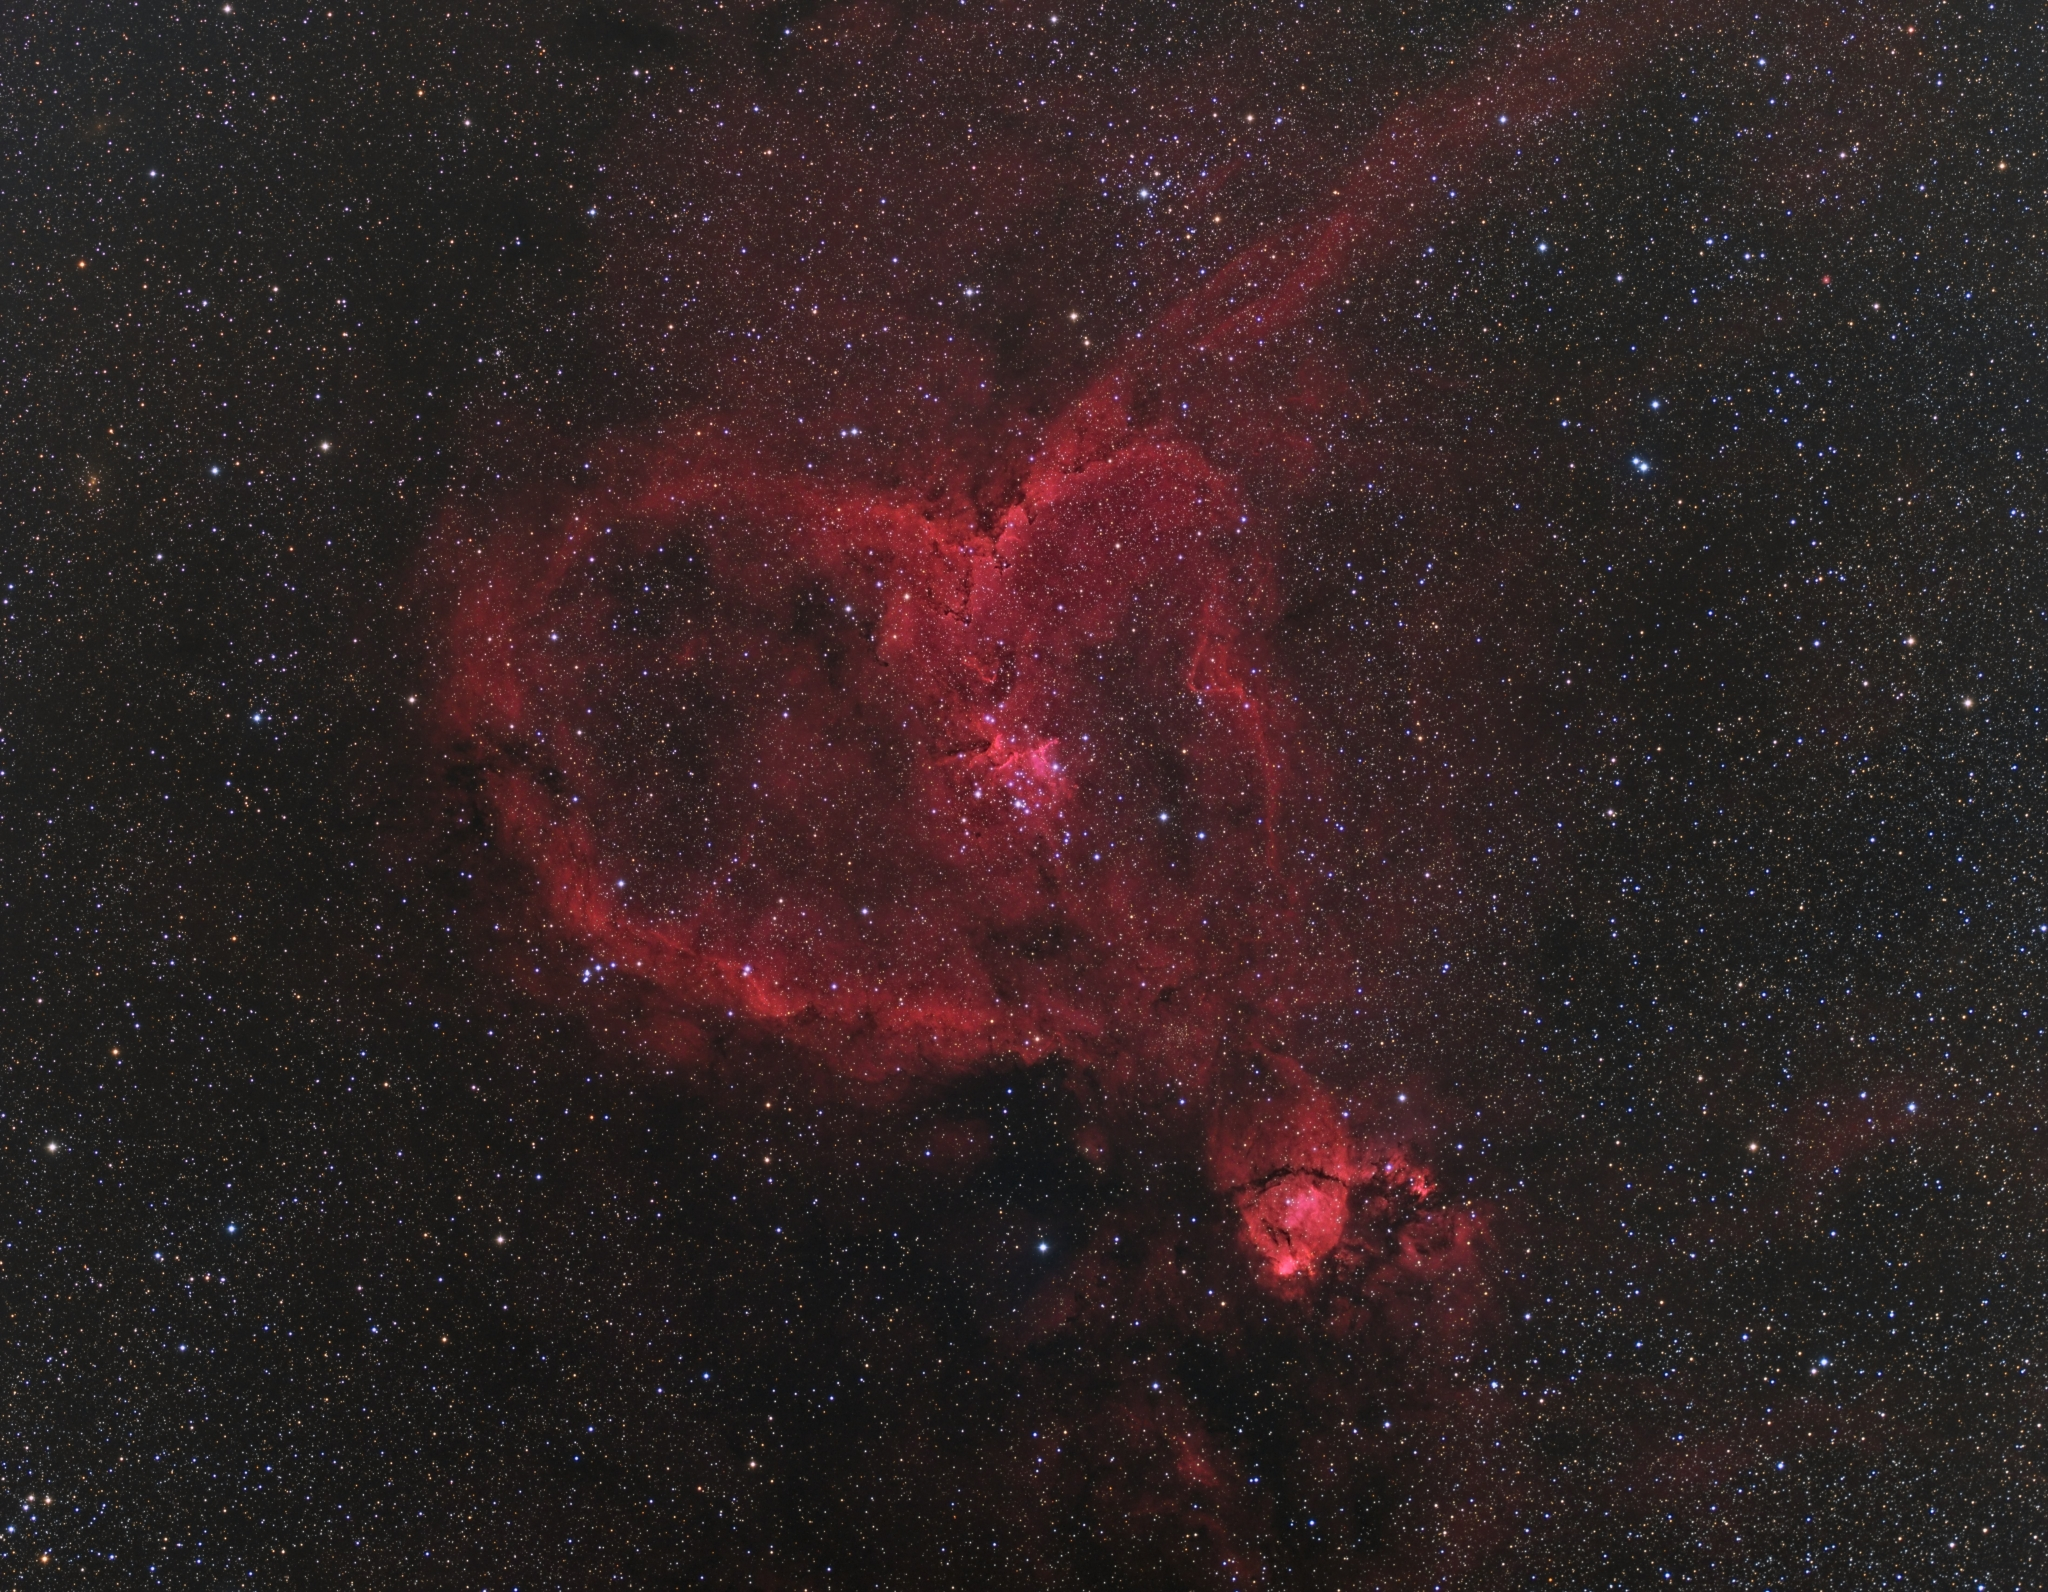 The Heart Nebula - Astrodoc: Astrophotography by Ron Brecher